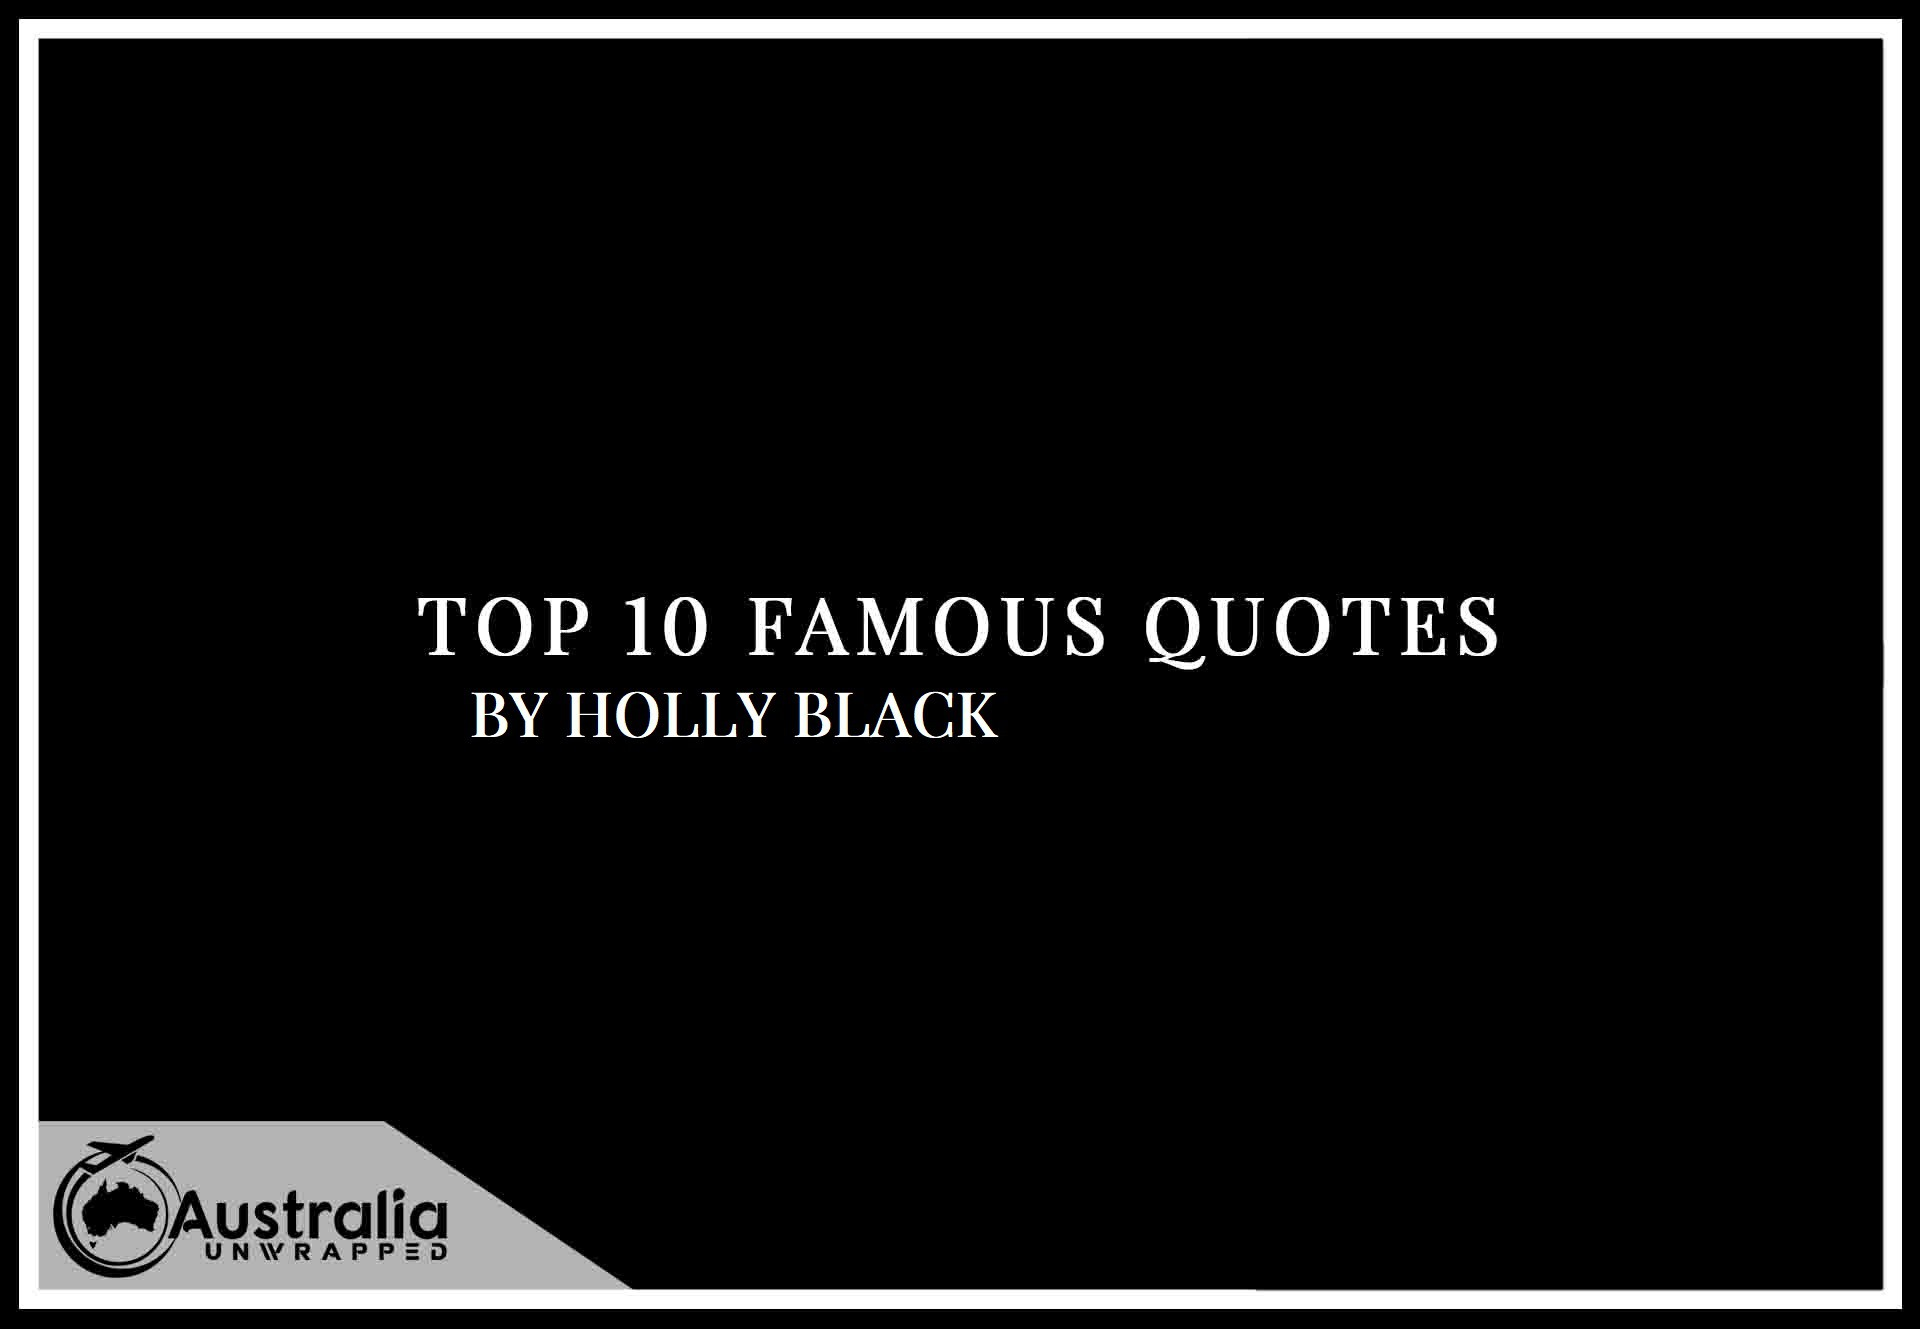 Top 10 Famous Quotes by Author Holly Black